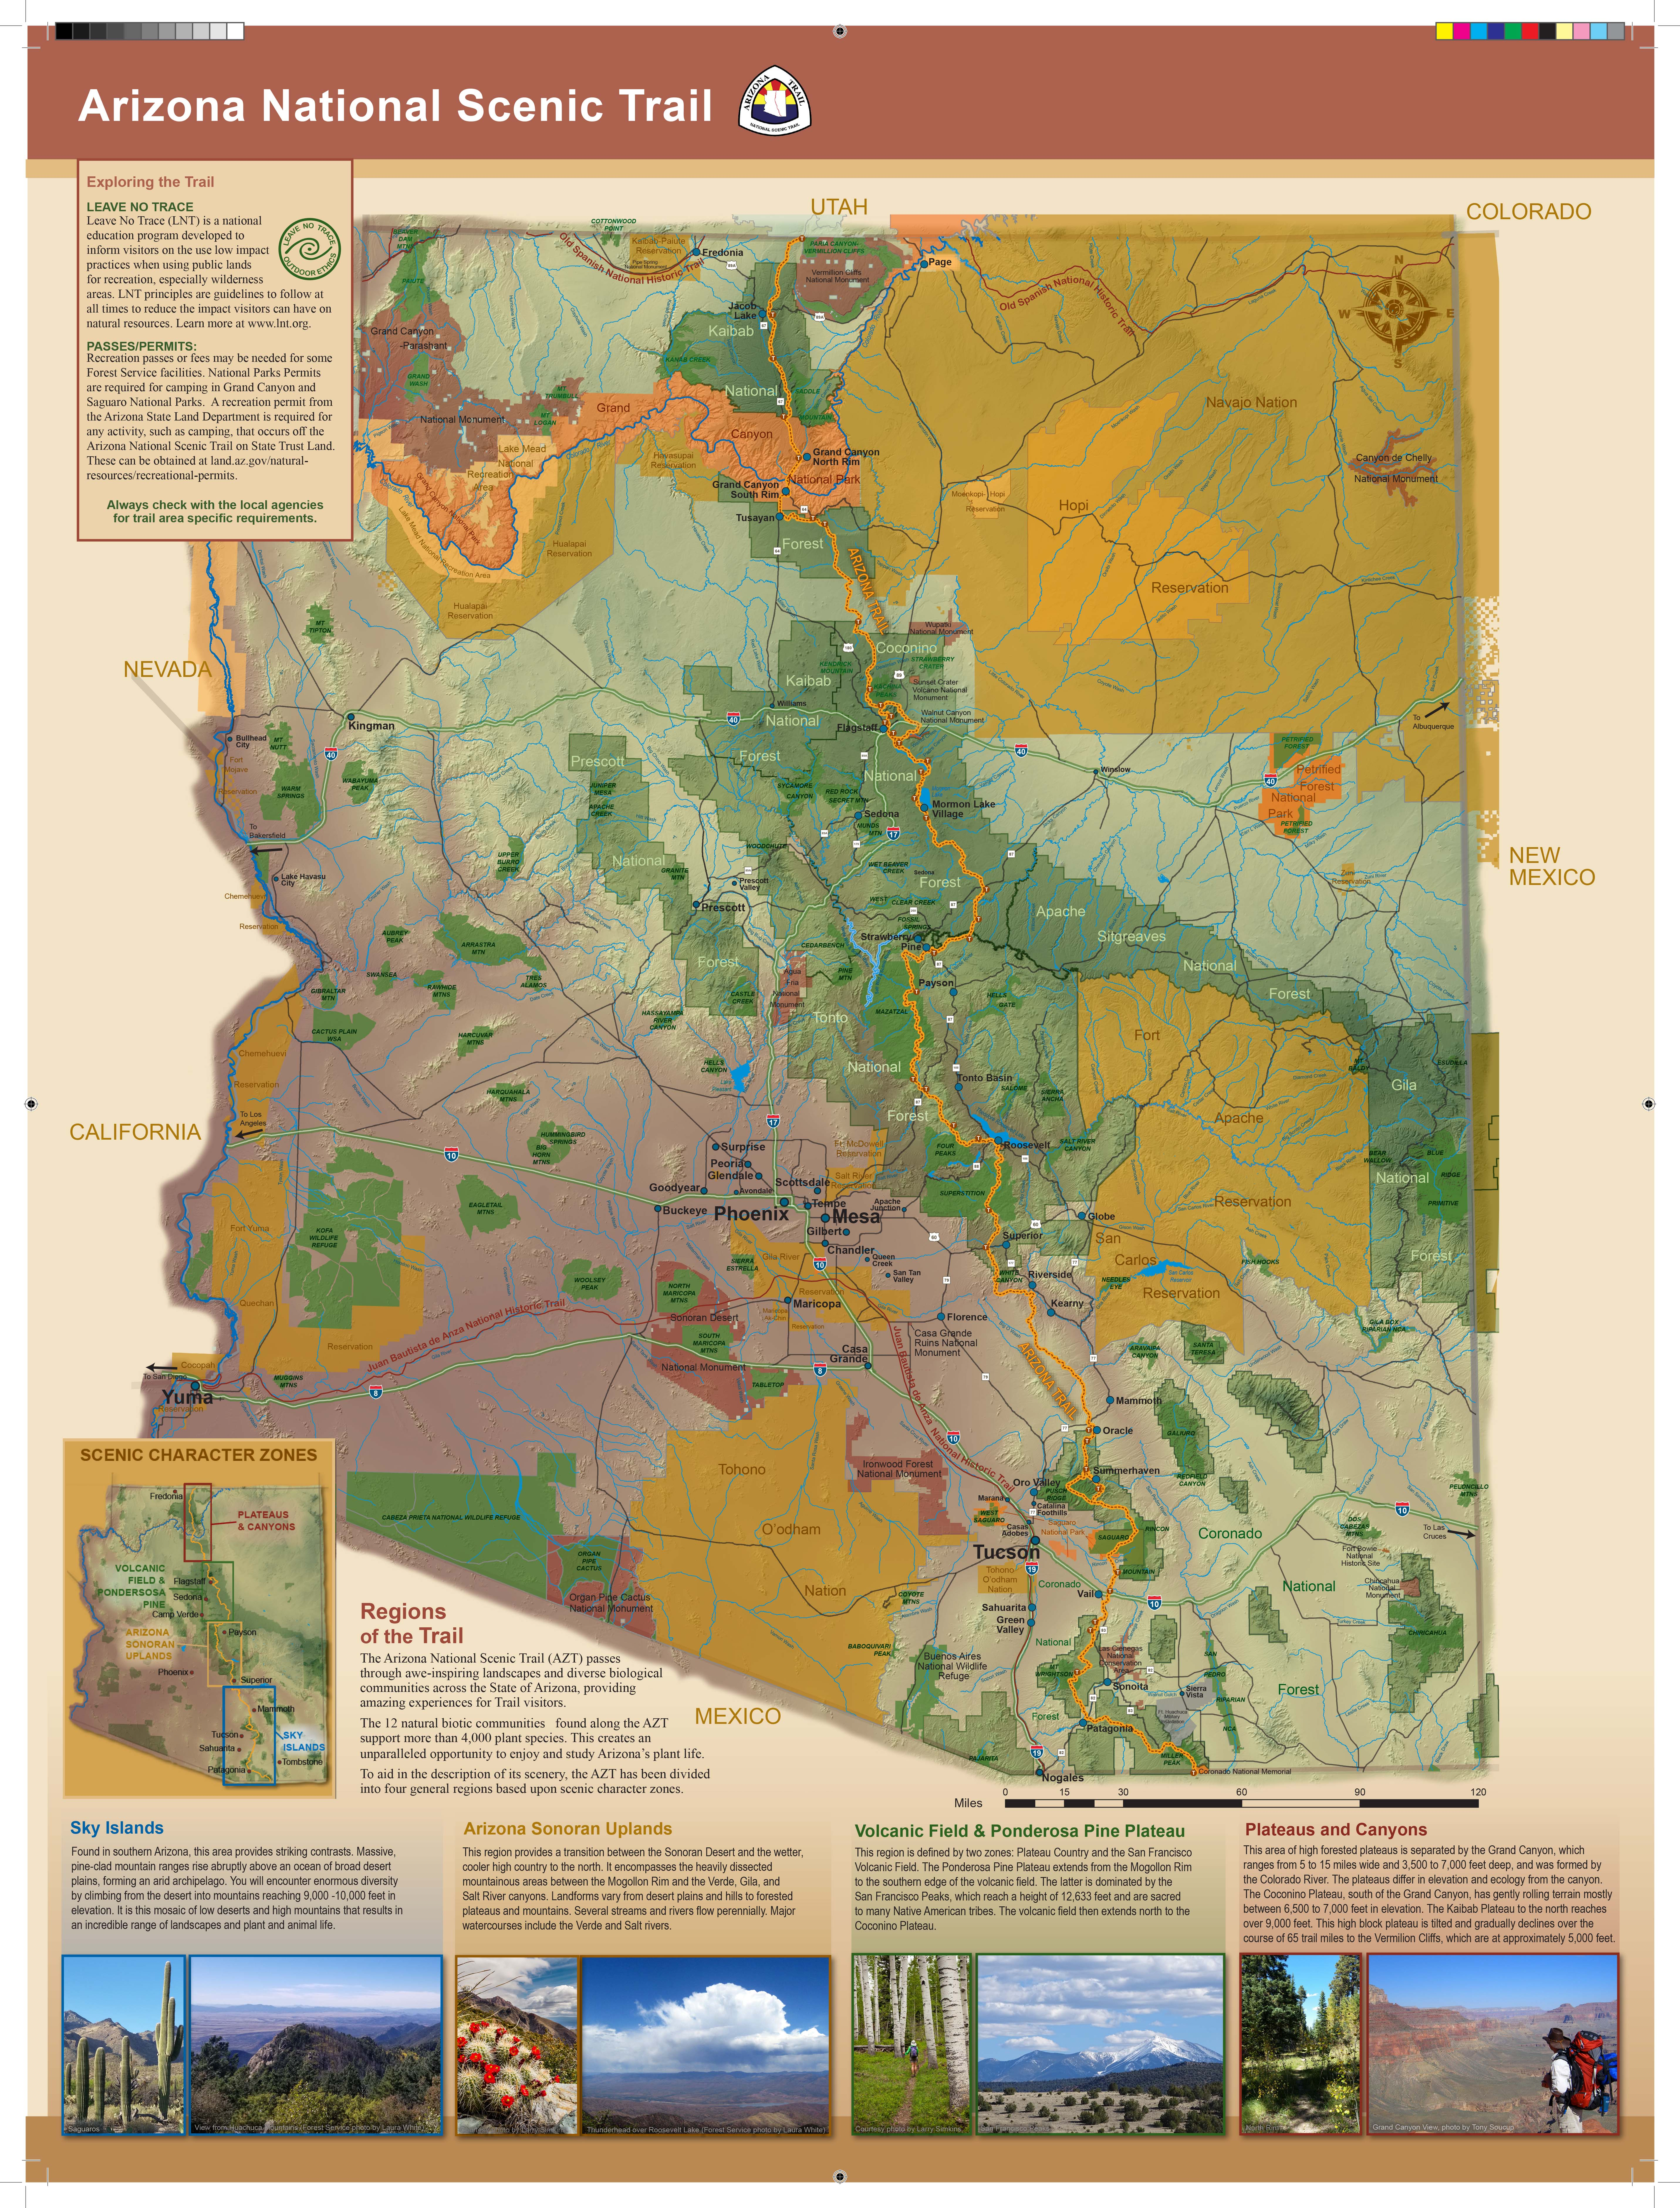 Map of the Arizona National Scenic Trail from USDAFS Trail brochure